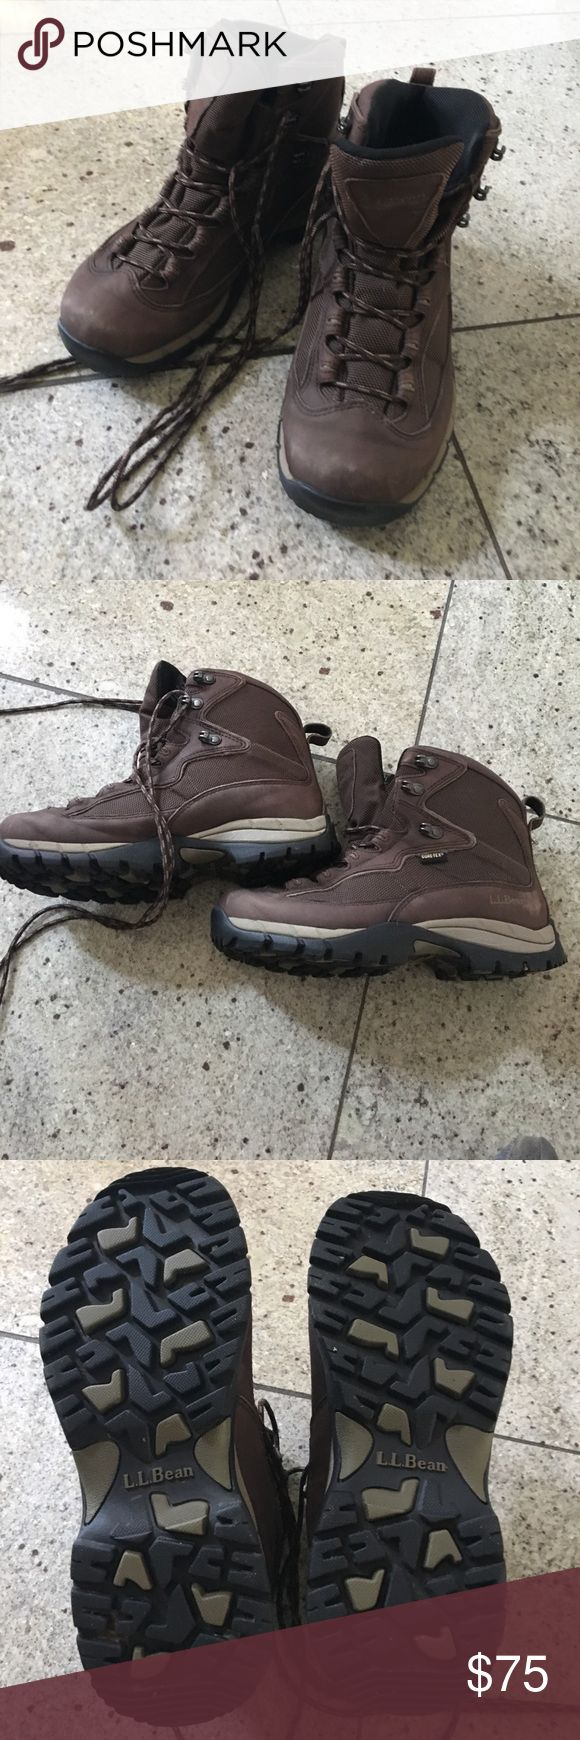 LL Bean hiking boots.. like new! Bought in the LL Bean store in Maine to go hiking and never worn again. Like new. Size 7 1/2 LL Bean Shoes Winter & Rain Boots